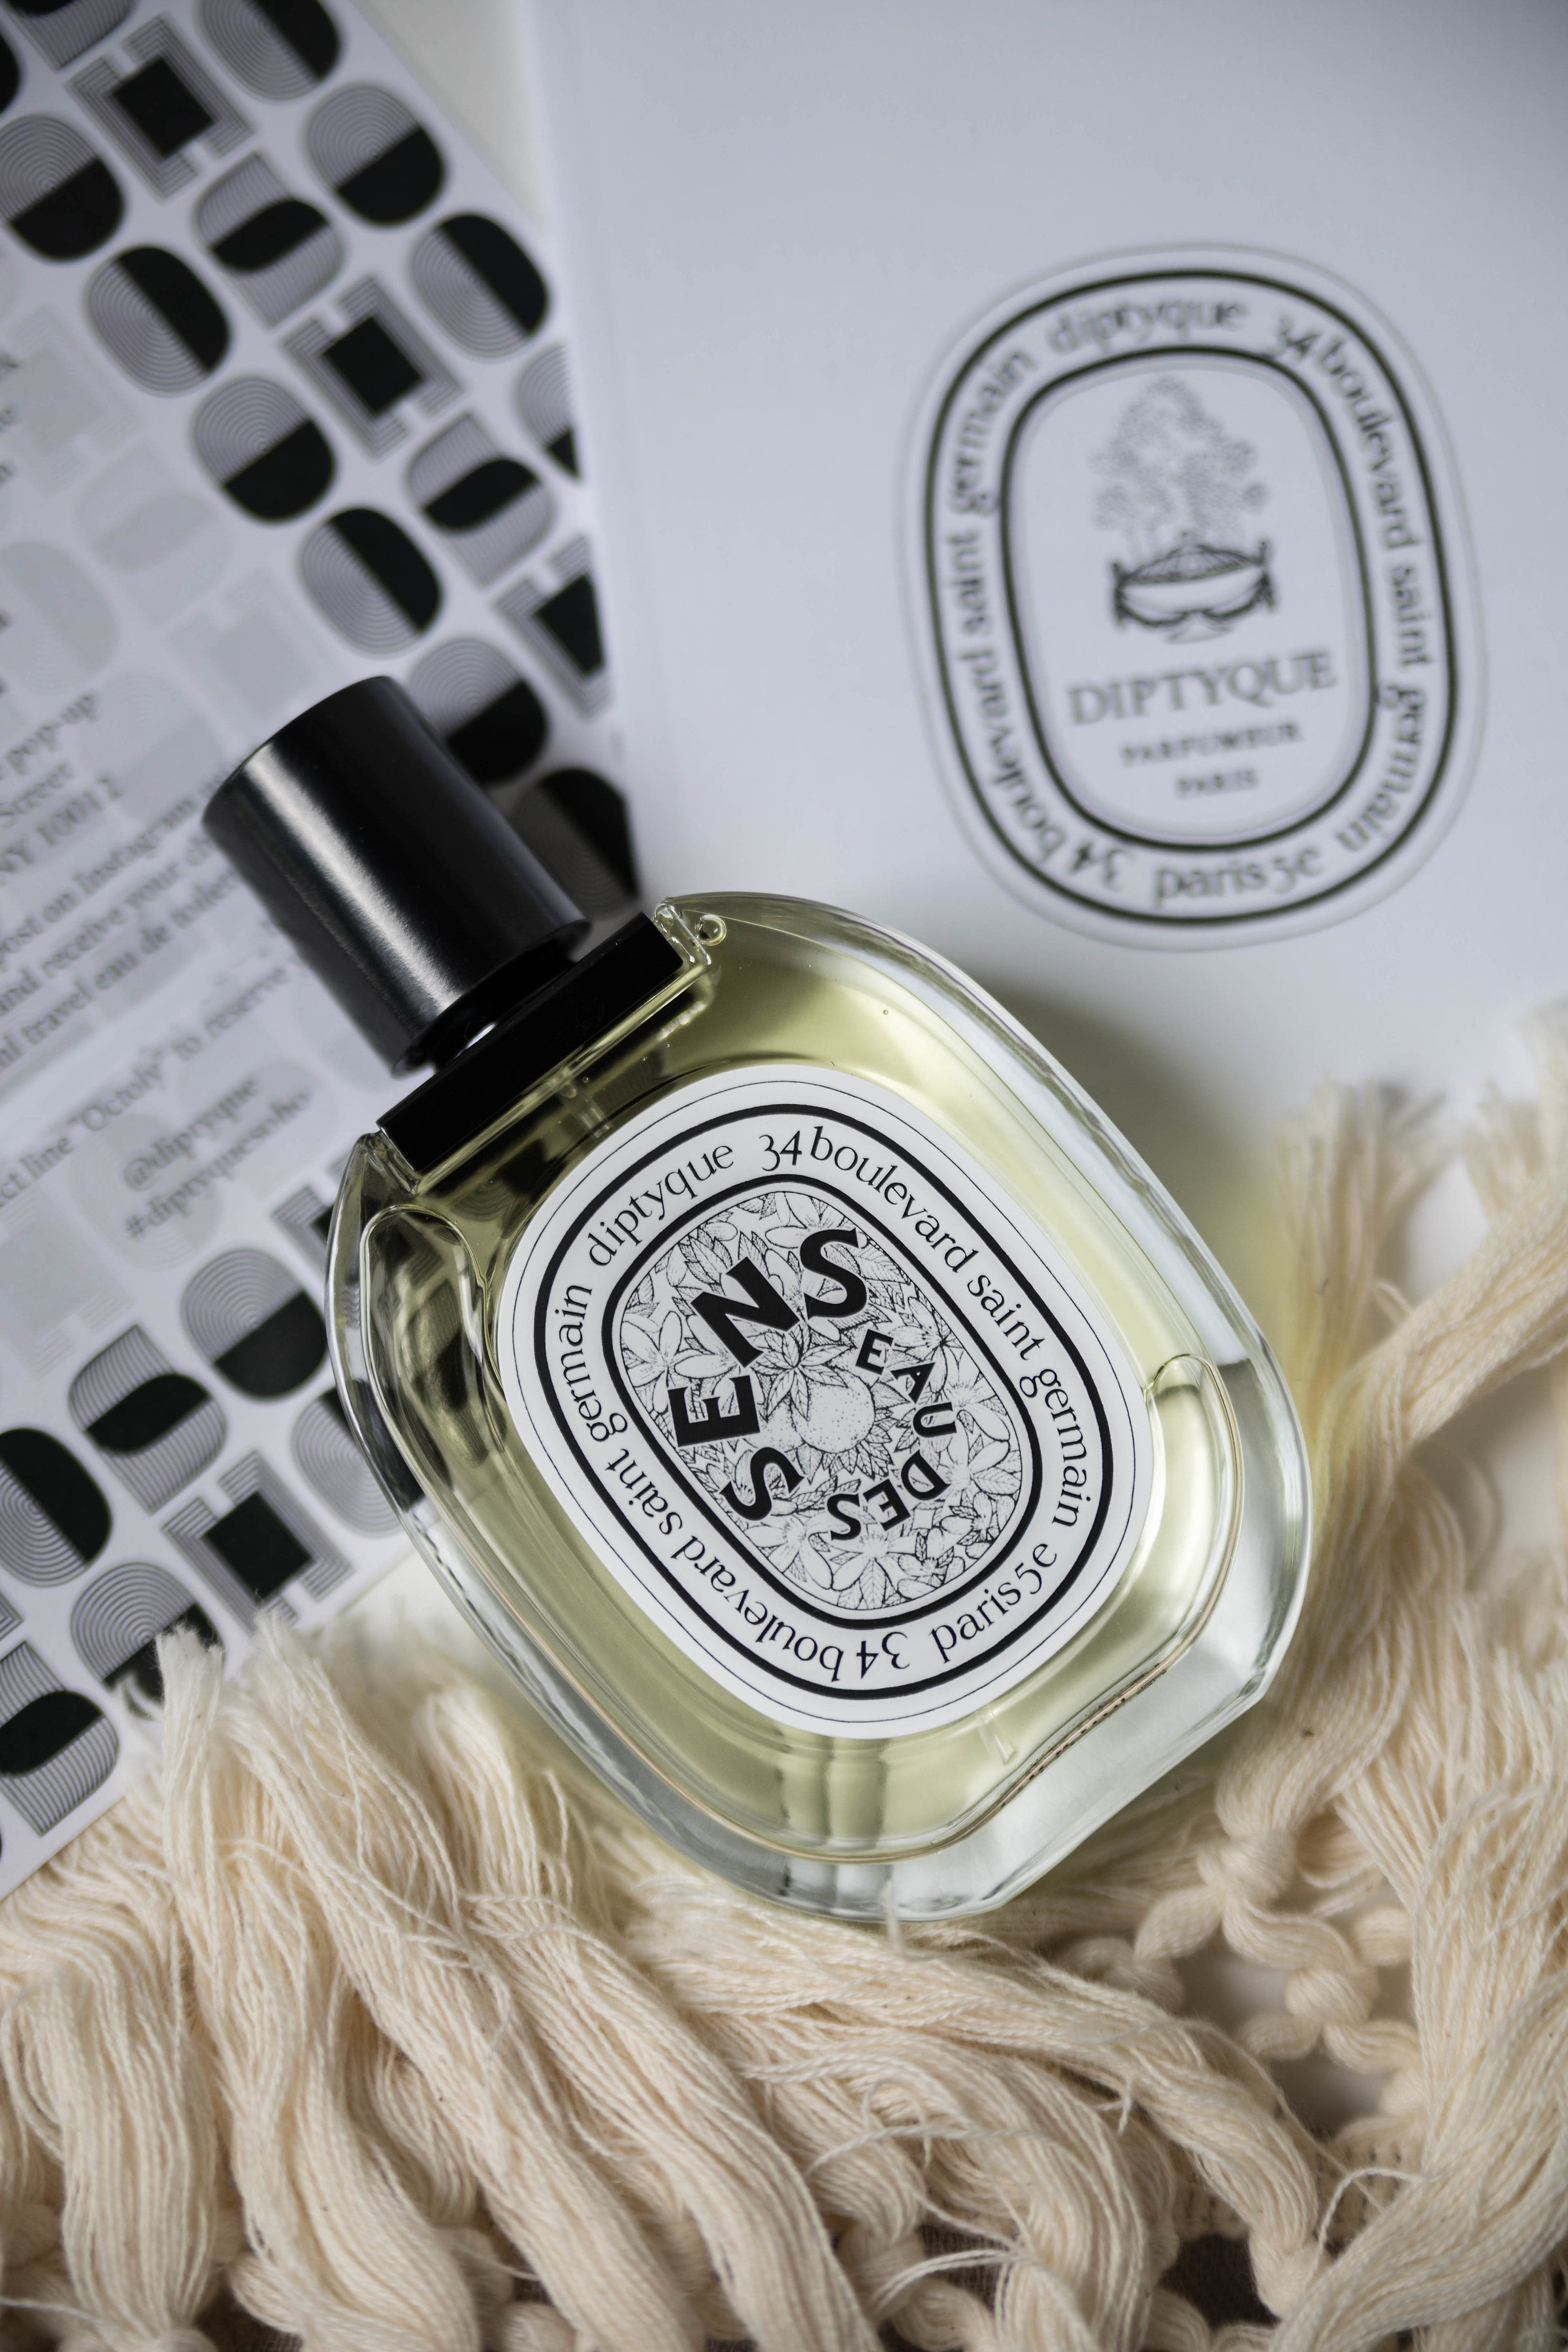 Diptyque Perfume Collection and Review of Eau des Sens Fragrance